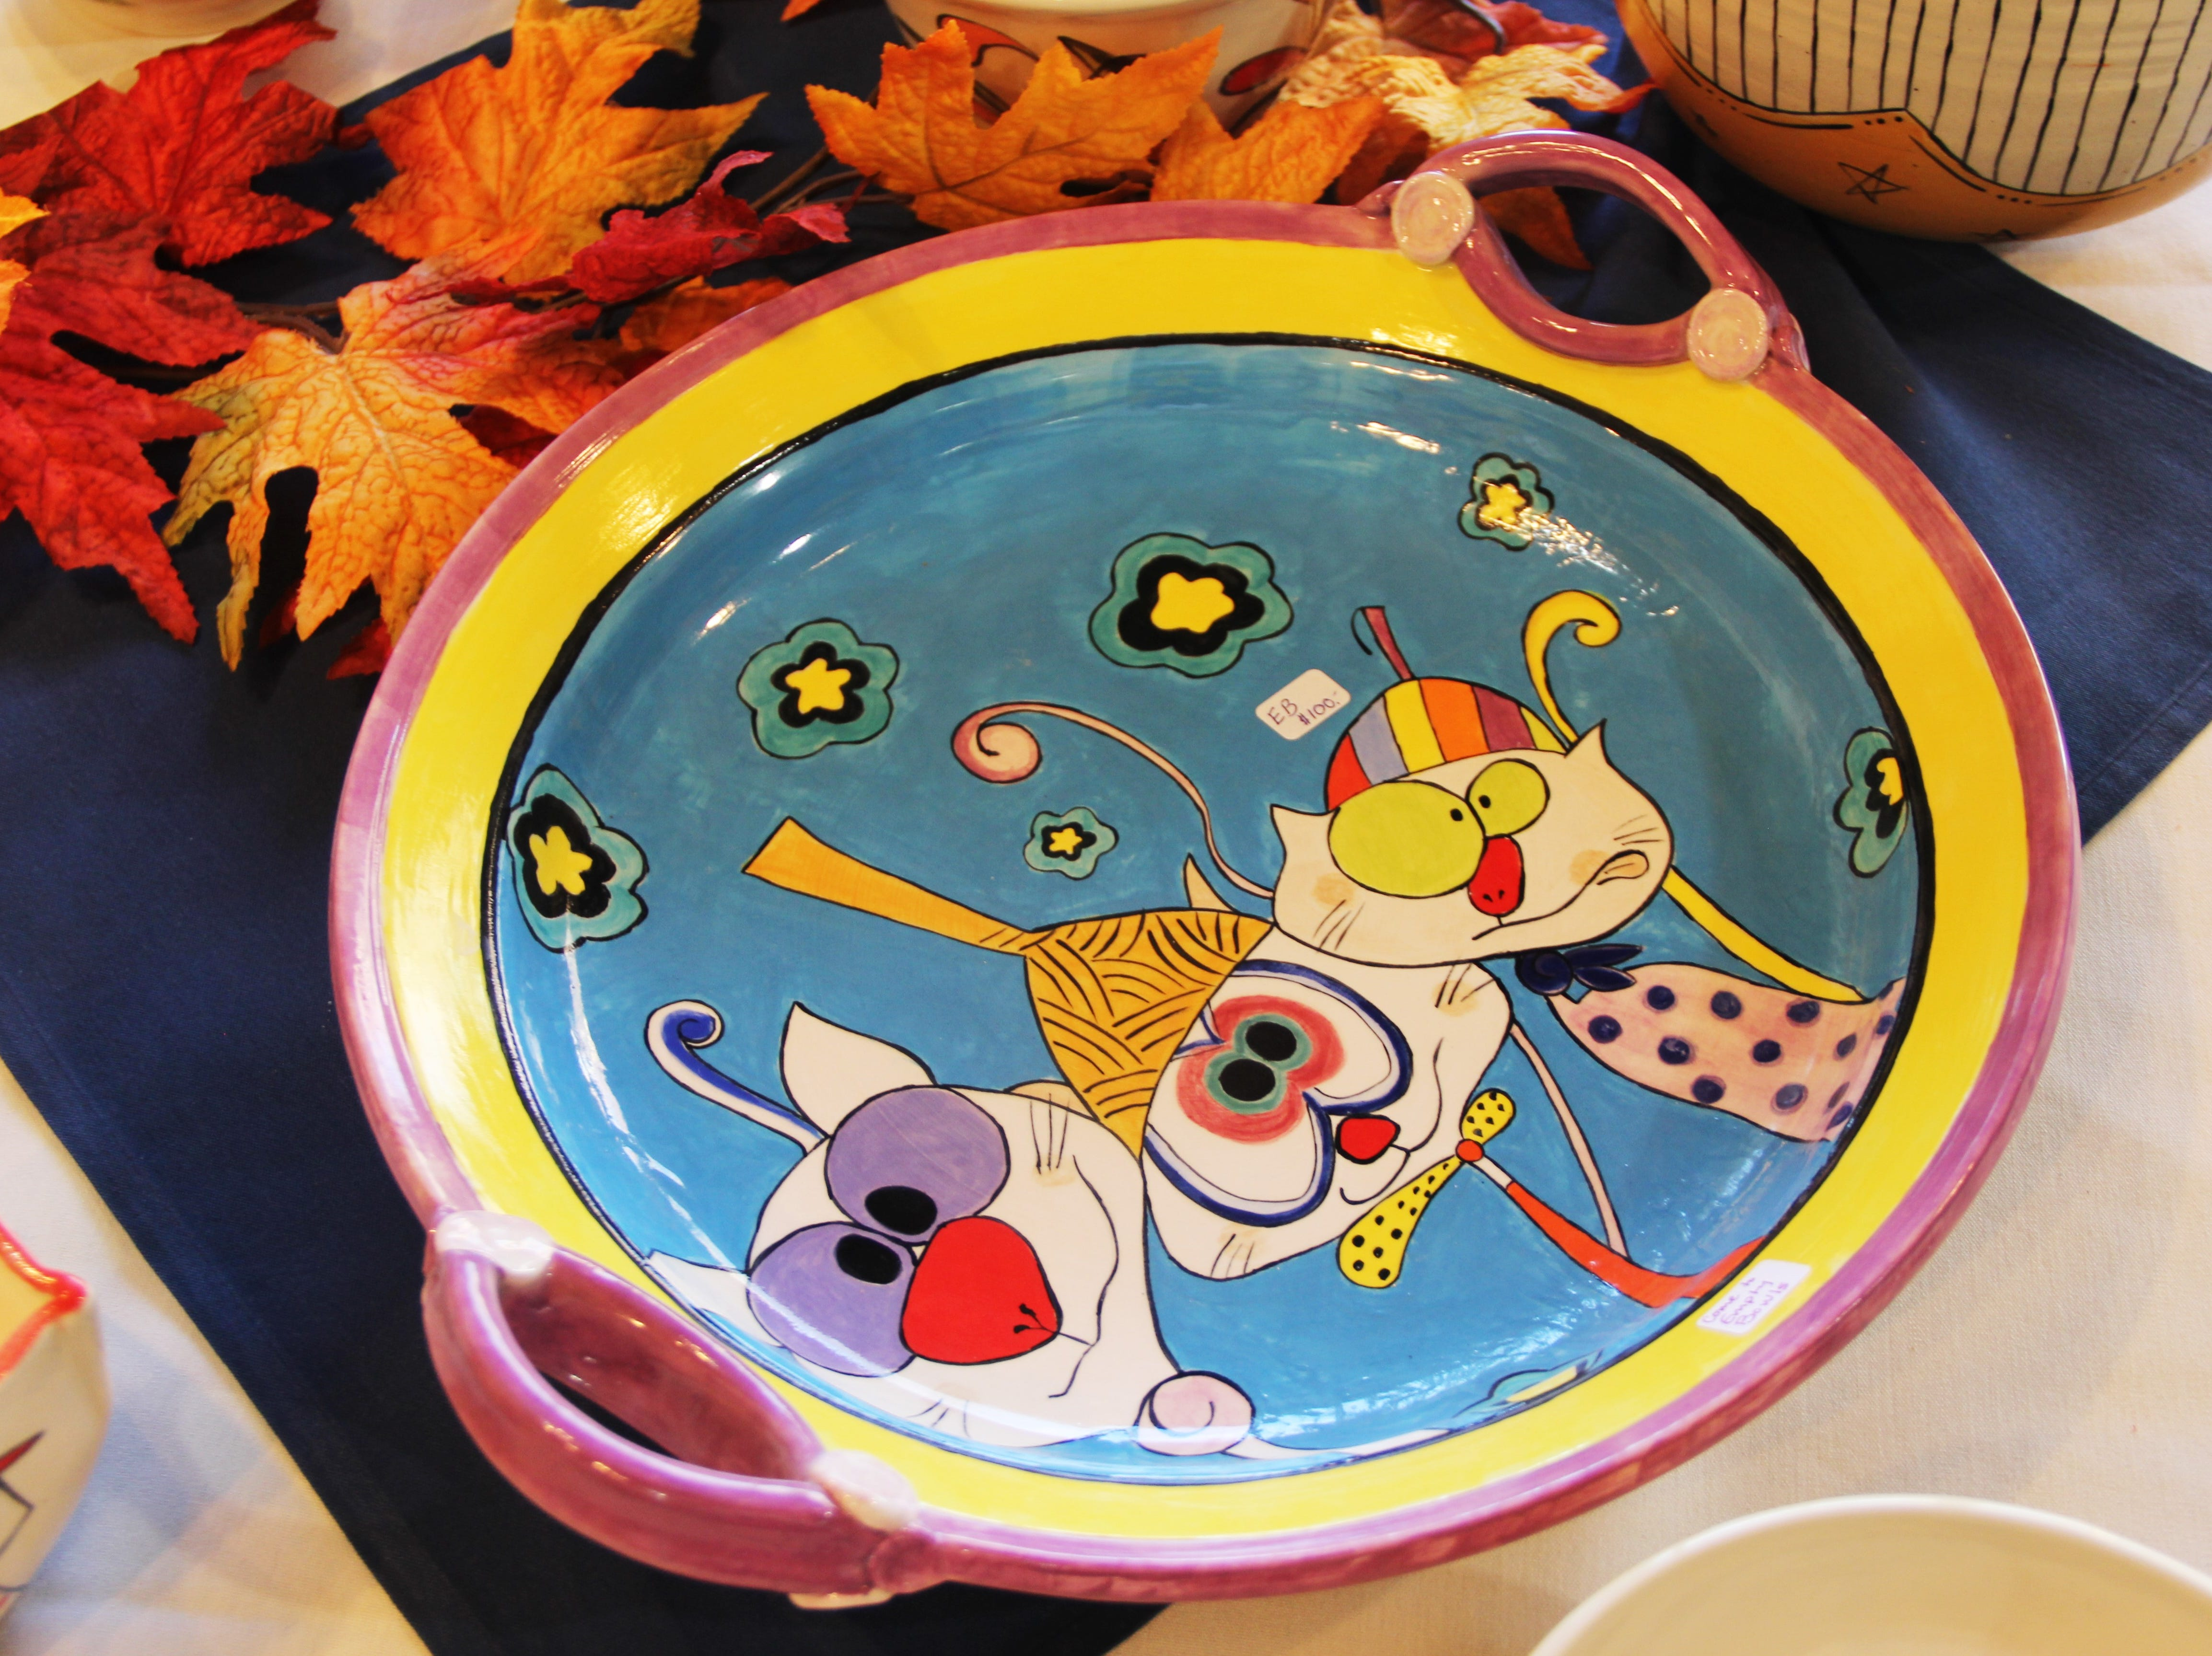 A bowl with a cartoon design at the Willamette Art Center's Empty Bowls fundraiser on Saturday, Nov. 17.